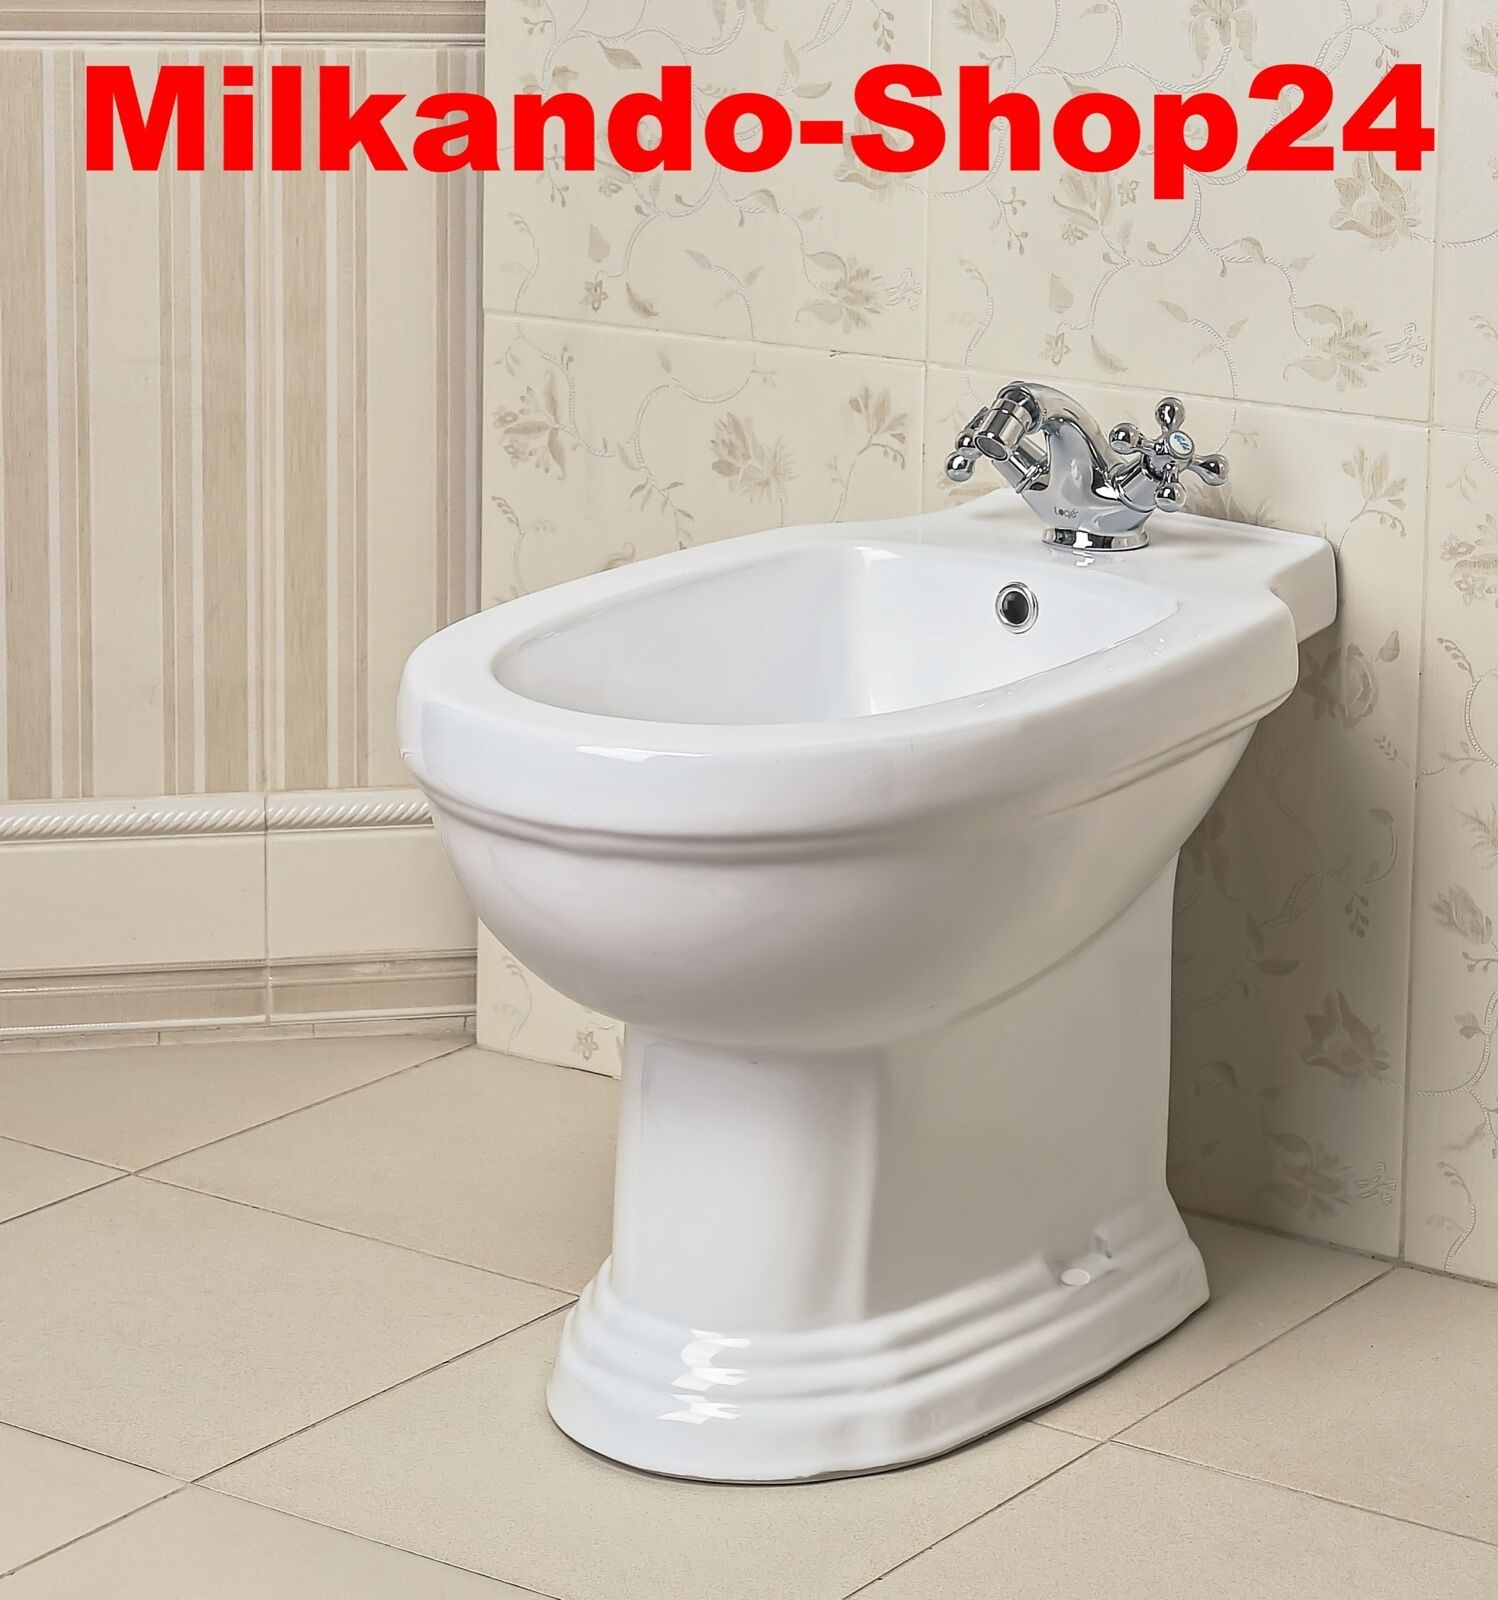 waschbecken keramik retro inkl s ule stand wc retro stand bidet komplett ebay. Black Bedroom Furniture Sets. Home Design Ideas